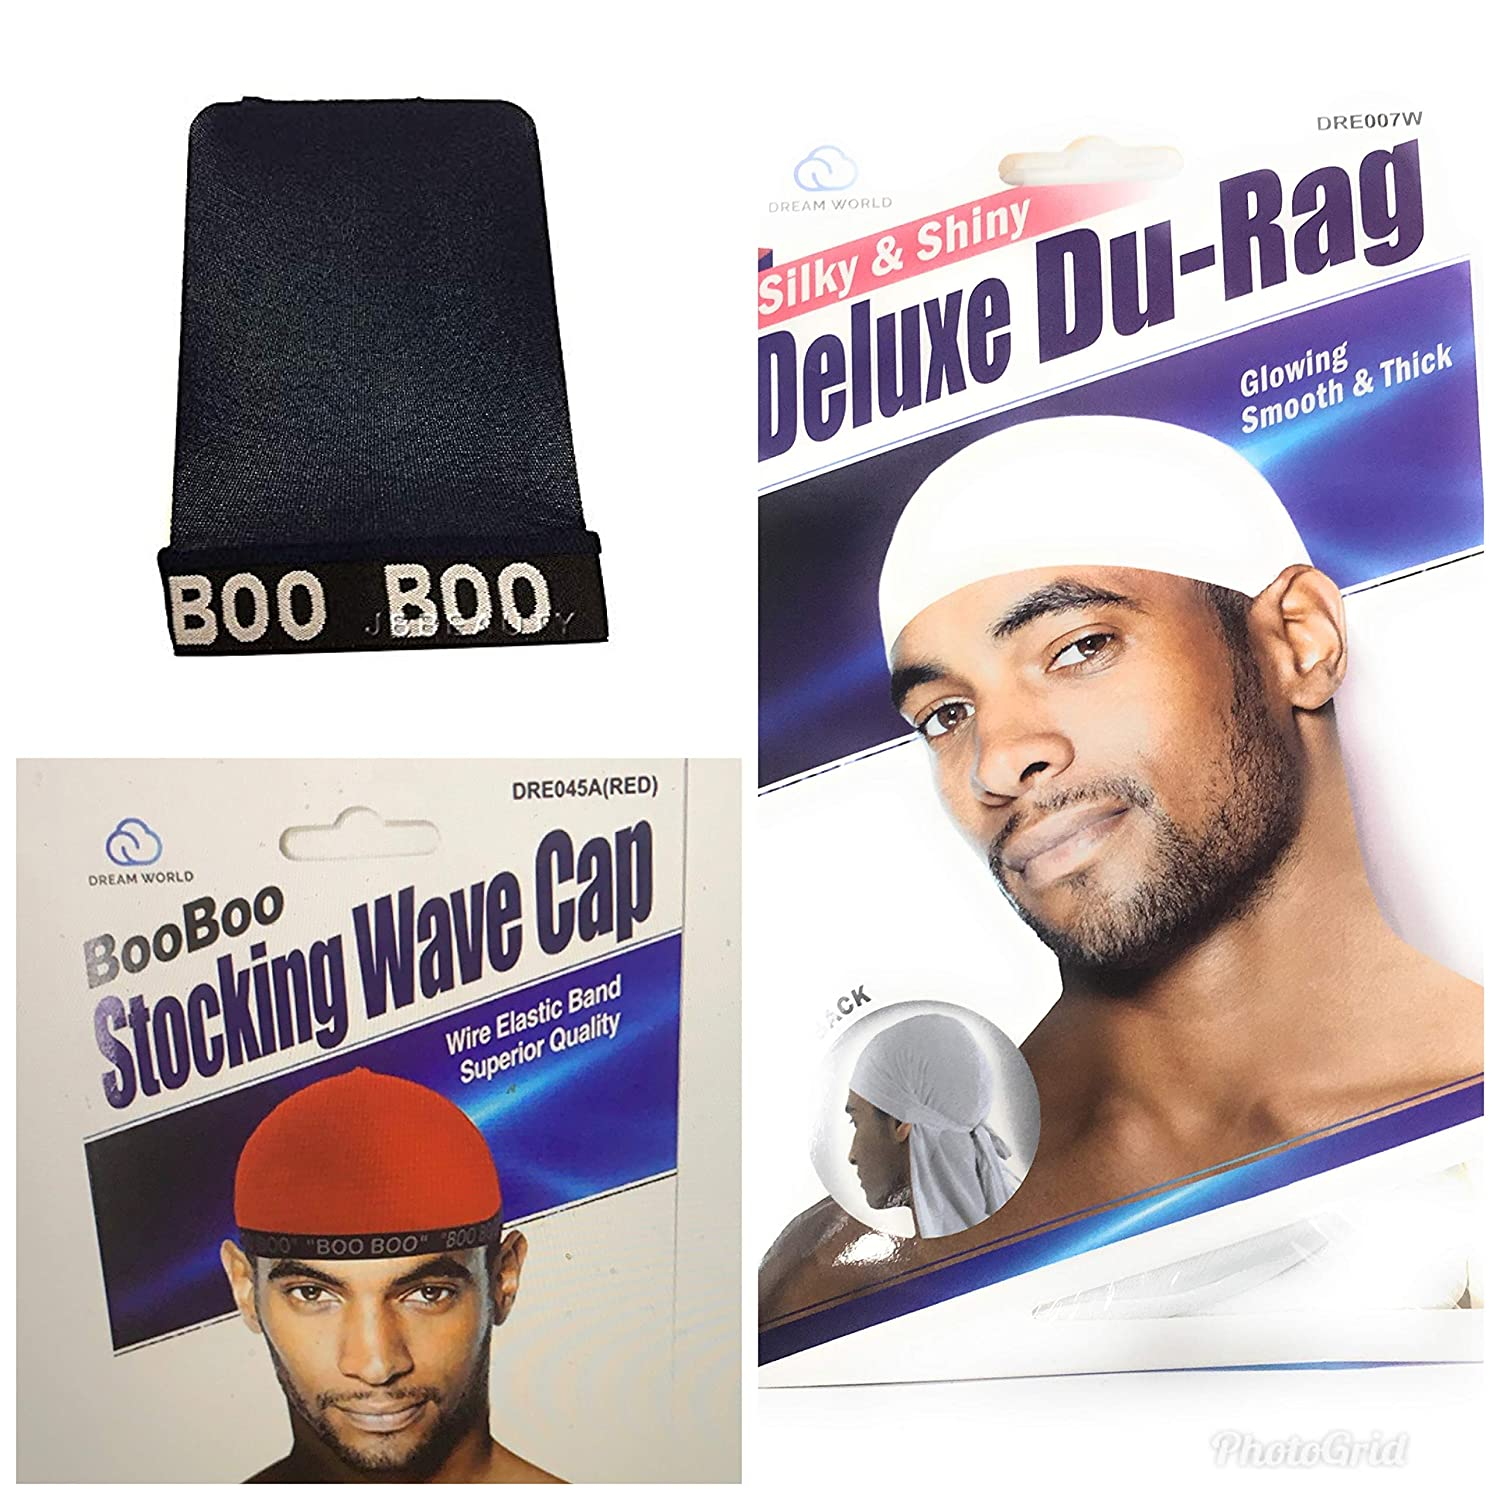 US SELLER Dream Boo Boo Stocking Wave Cap Wire Elastic Band Stretch Du Rag RED Unisex Clothing, Shoes & Accs Hats